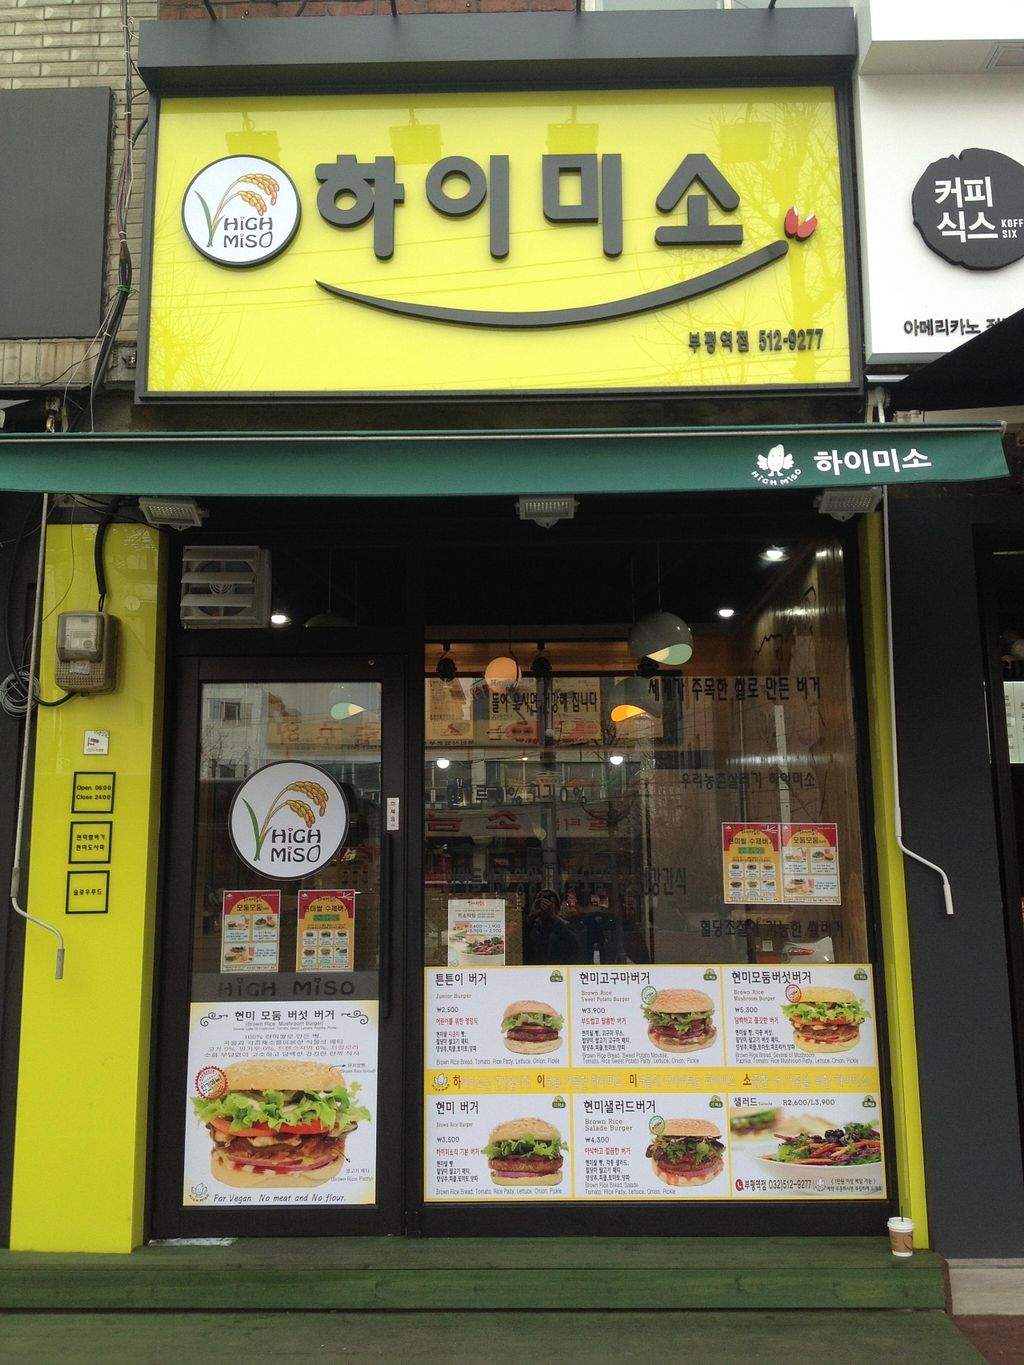 """Photo of CLOSED: High Miso  by <a href=""""/members/profile/Emomeow"""">Emomeow</a> <br/>Front of the restaurant <br/> February 13, 2016  - <a href='/contact/abuse/image/69334/136177'>Report</a>"""